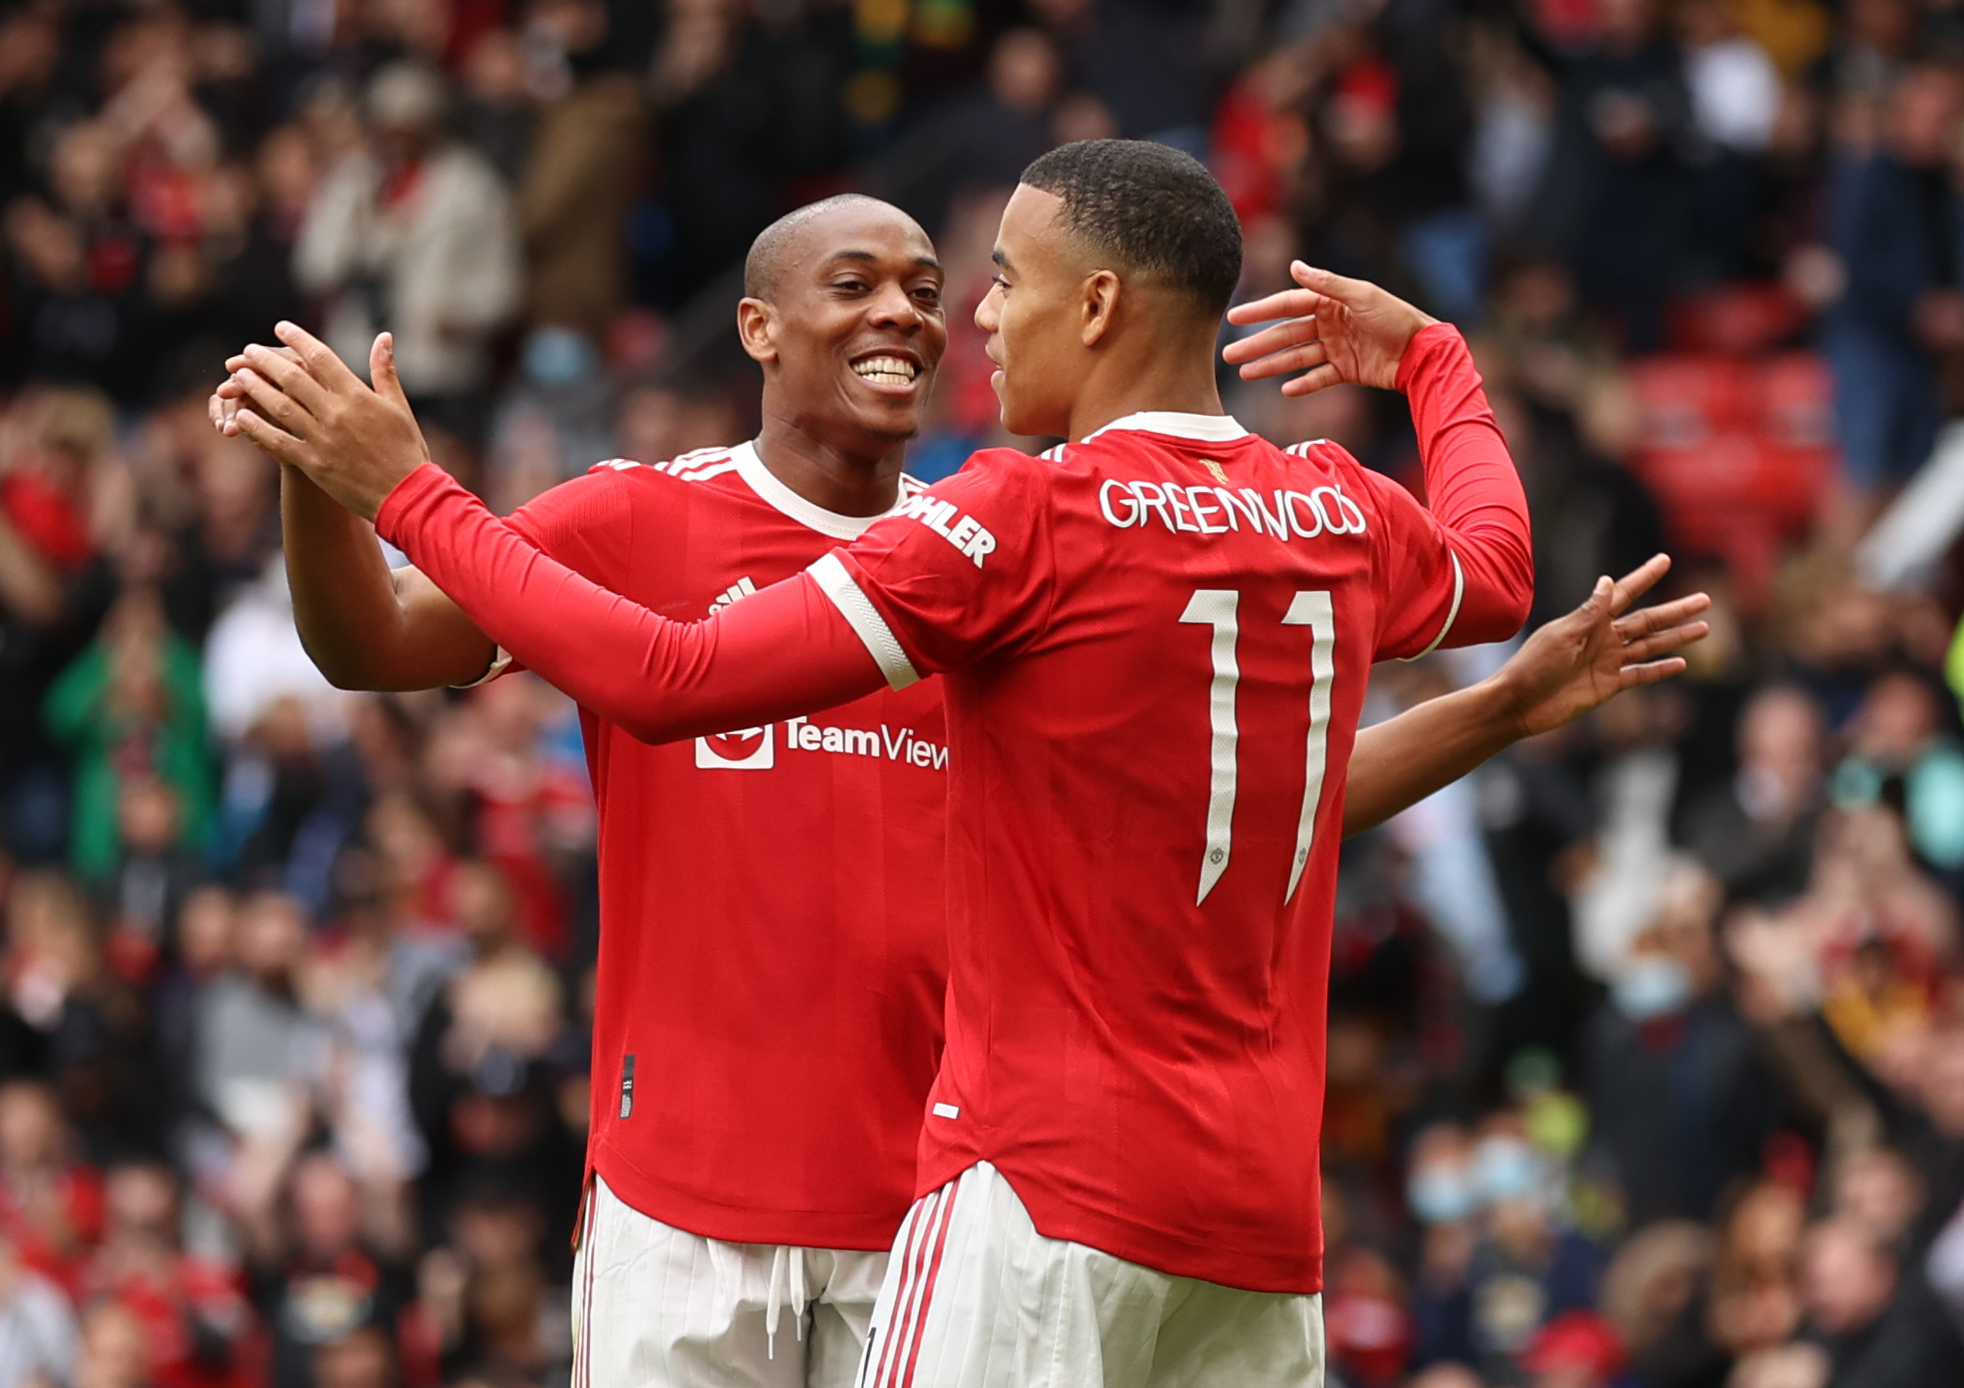 Manchester United season preview: Red Devils could win the EPL title. Here's why